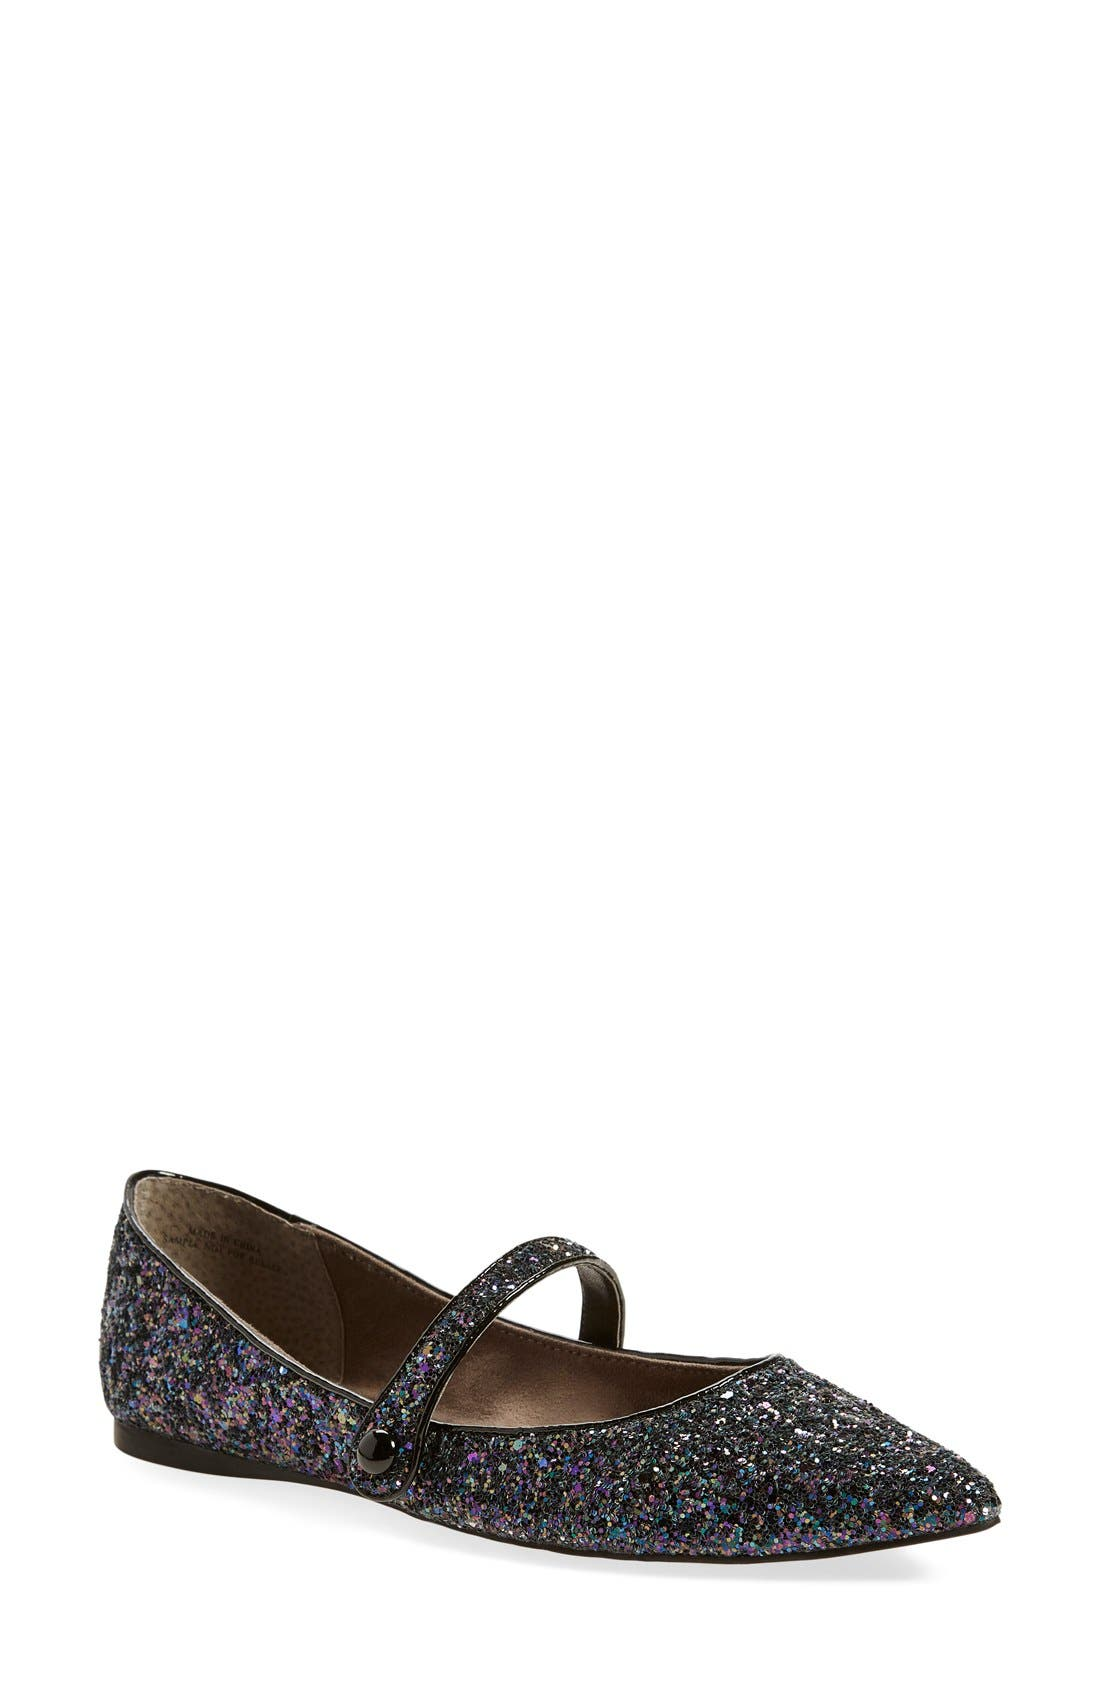 Main Image - BP. 'Maribel' Mary Jane Glitter Flat (Women)